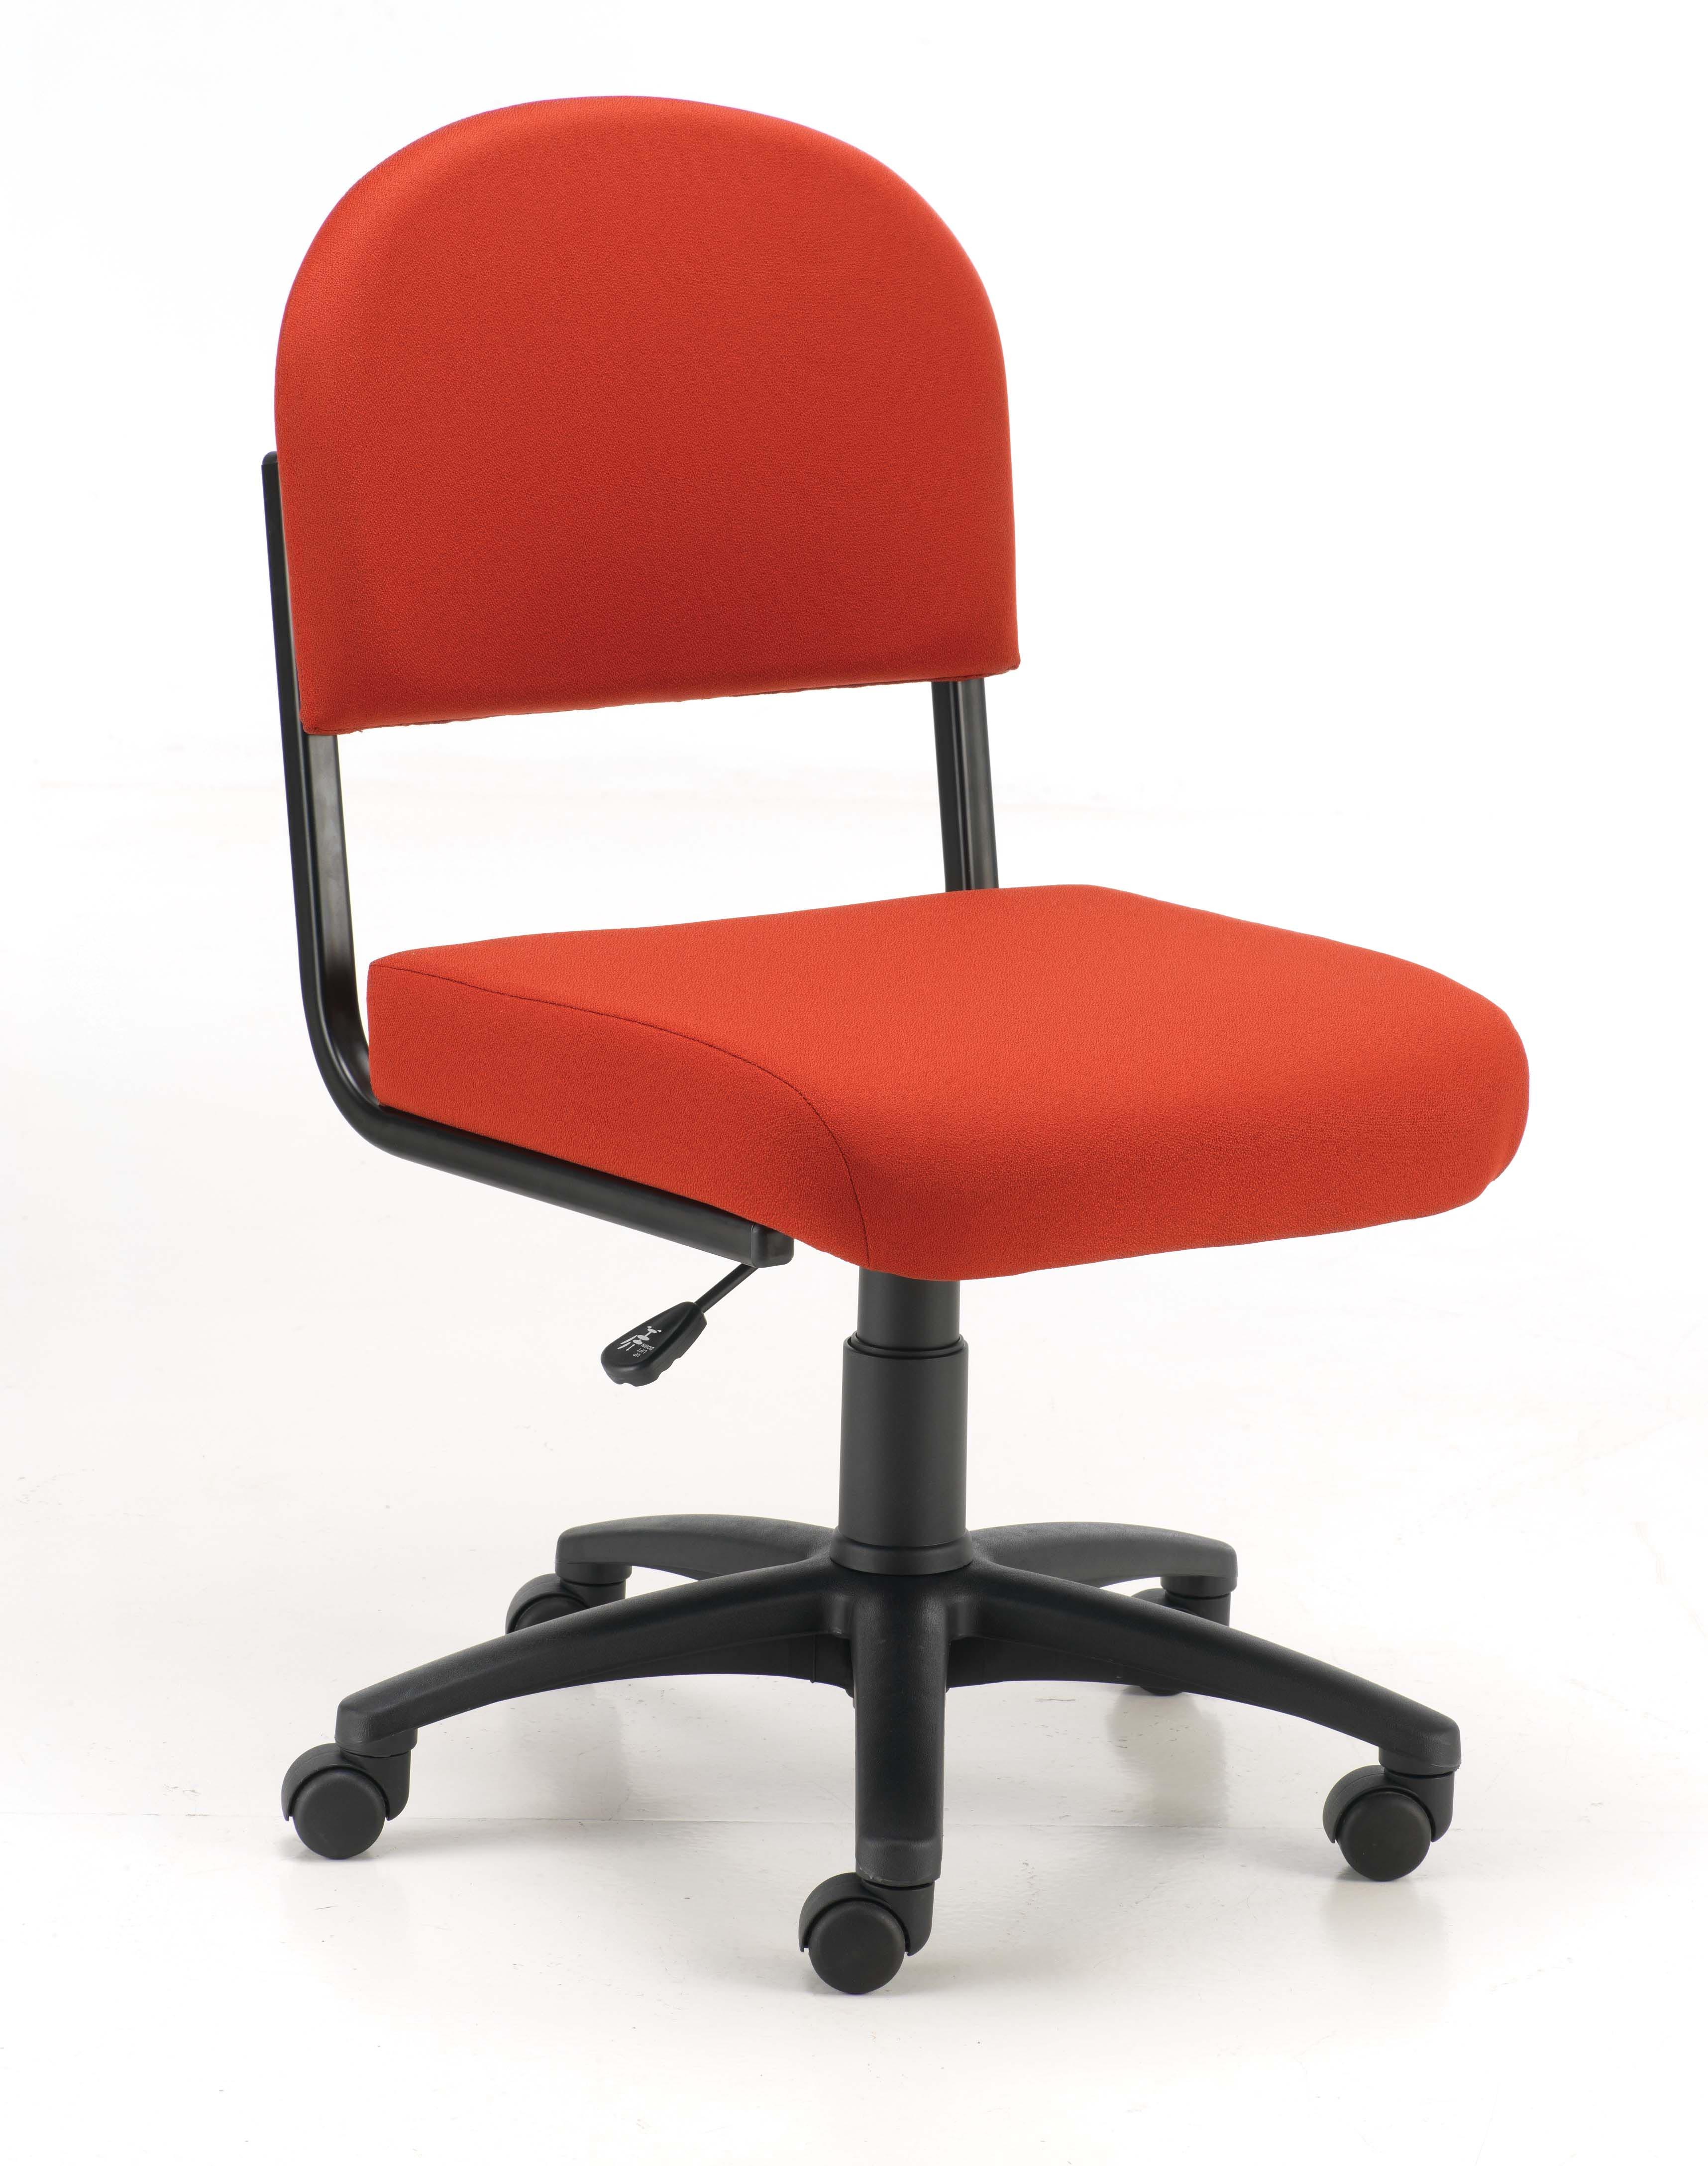 heavy duty office chair iklan1 previous next - Heavy Duty Office Chairs